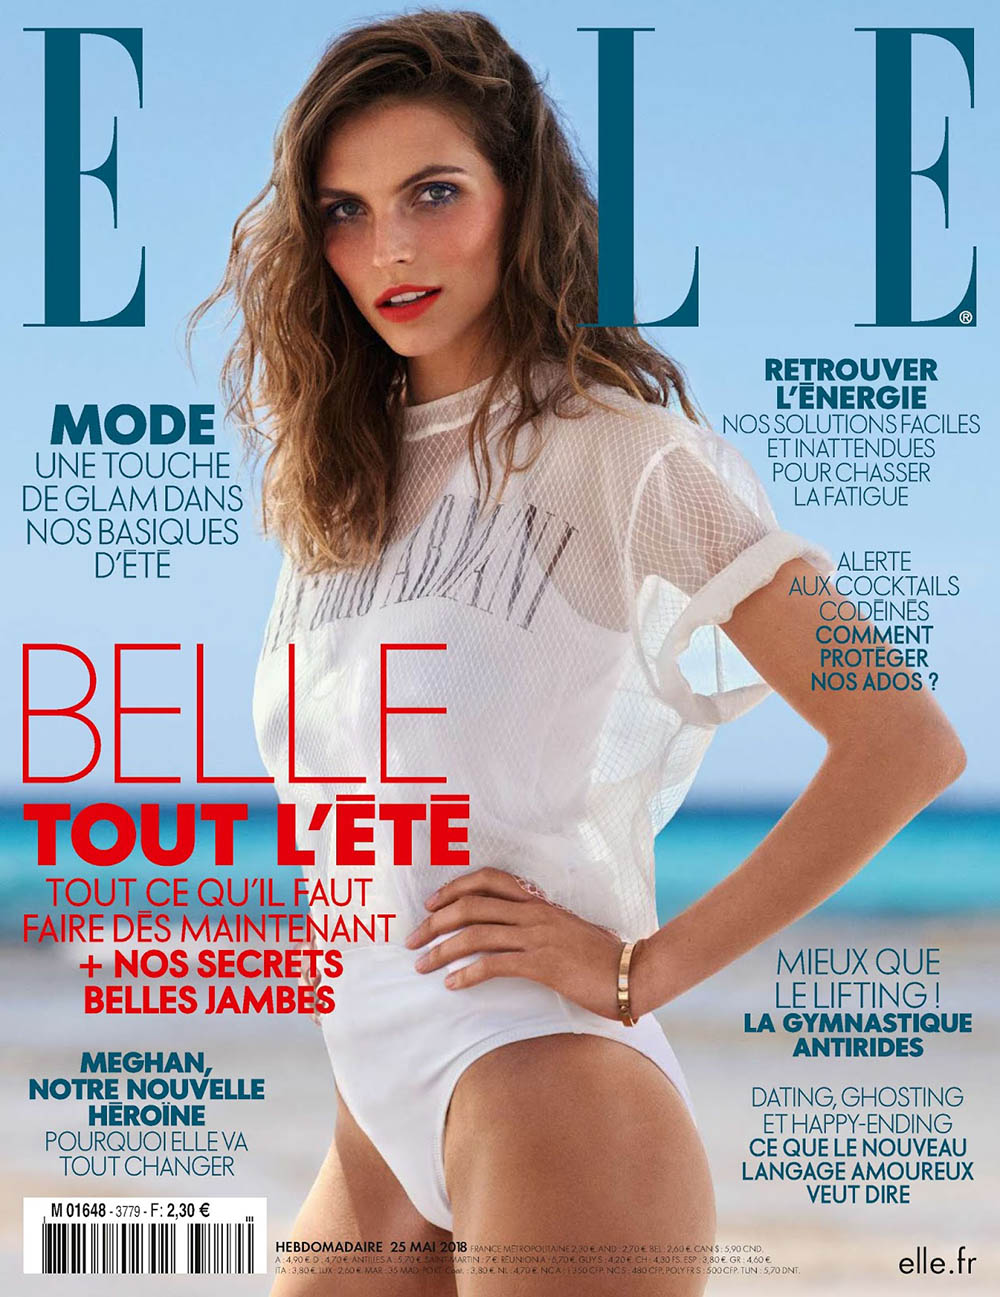 Karlina Caune Wiklund covers Elle France May 25th, 2018 by Jan Welters